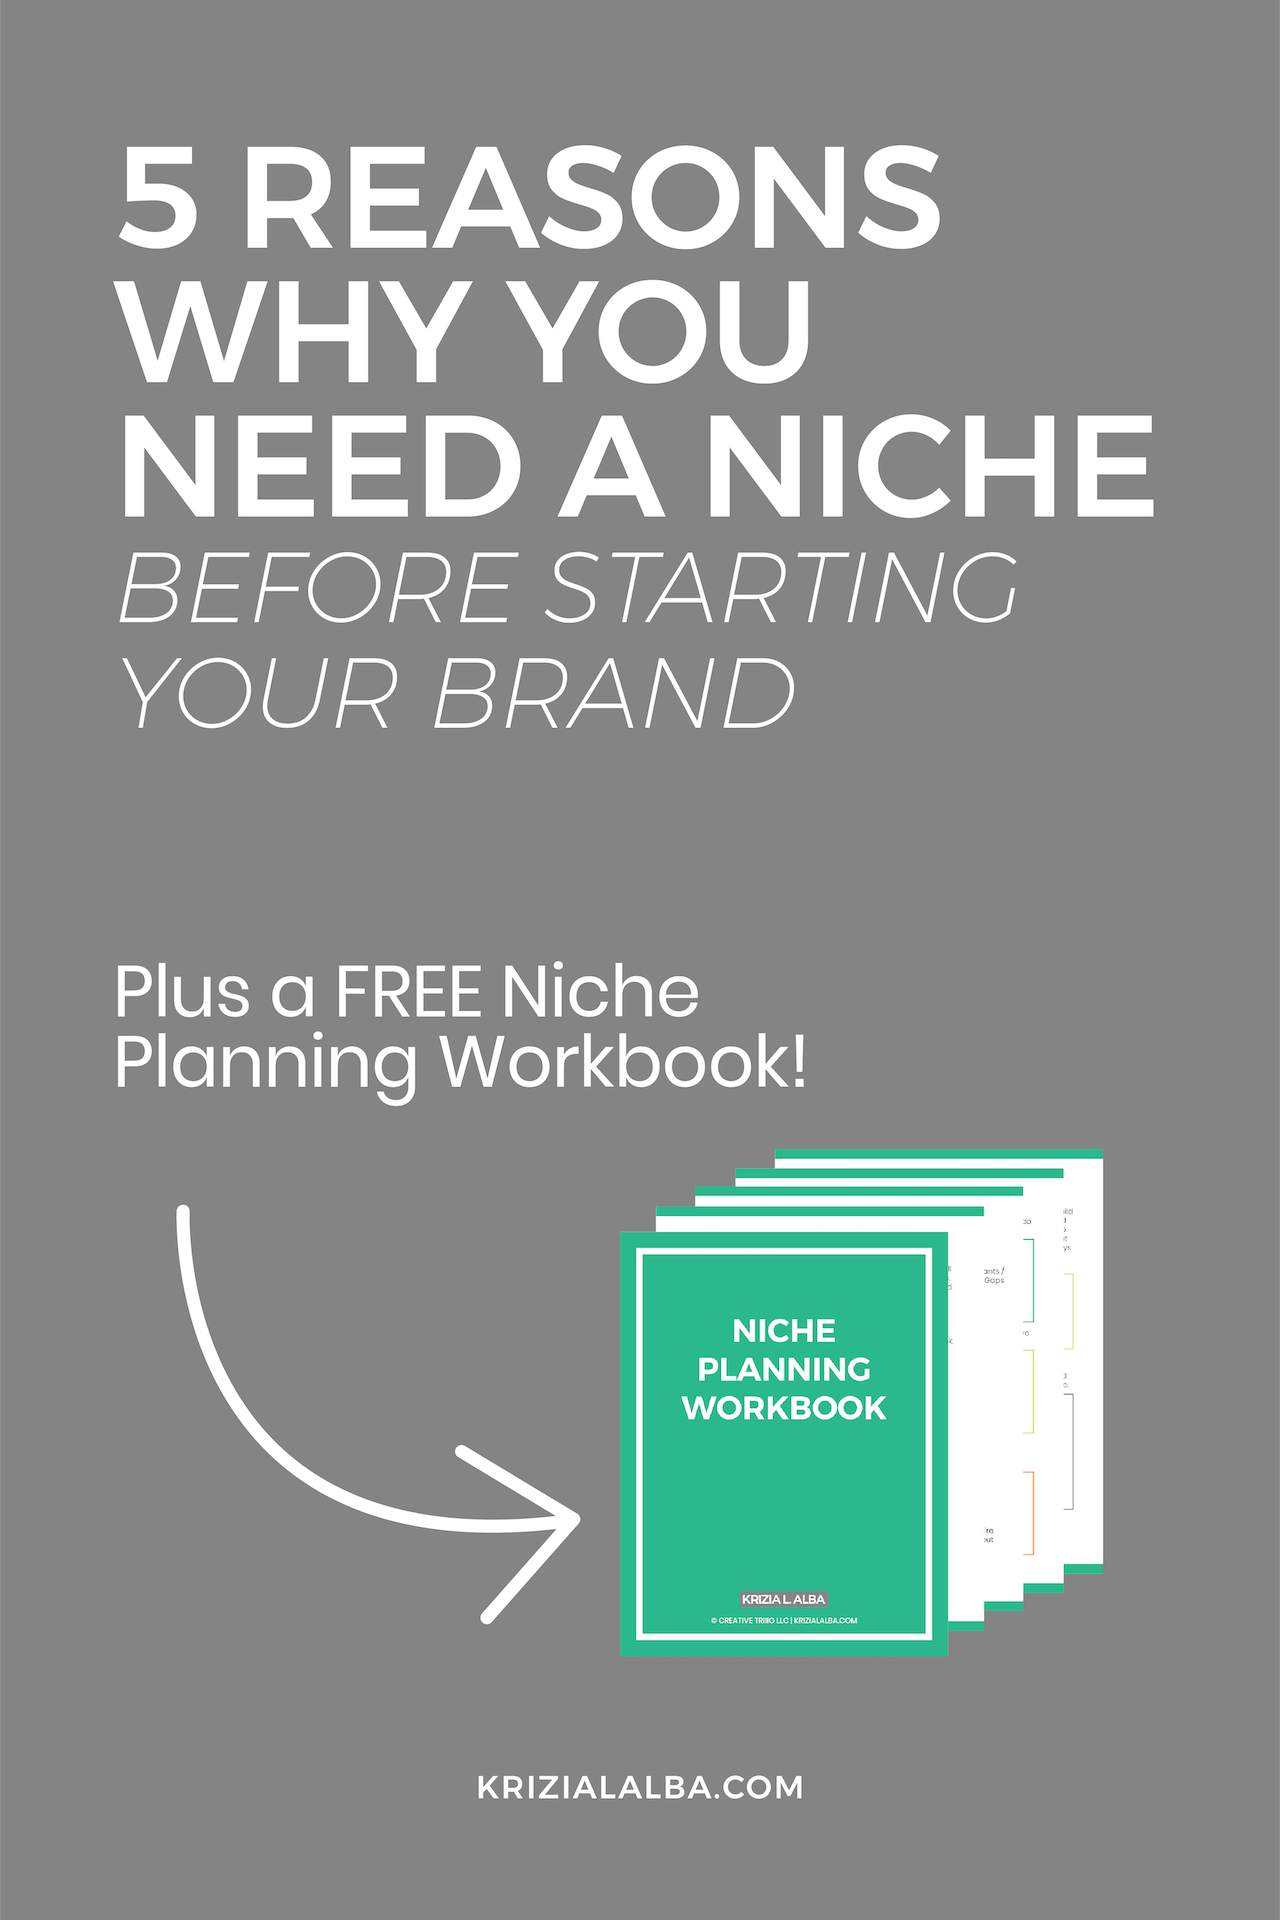 5 Reasons Why You Need a Niche Before Starting Your Brand